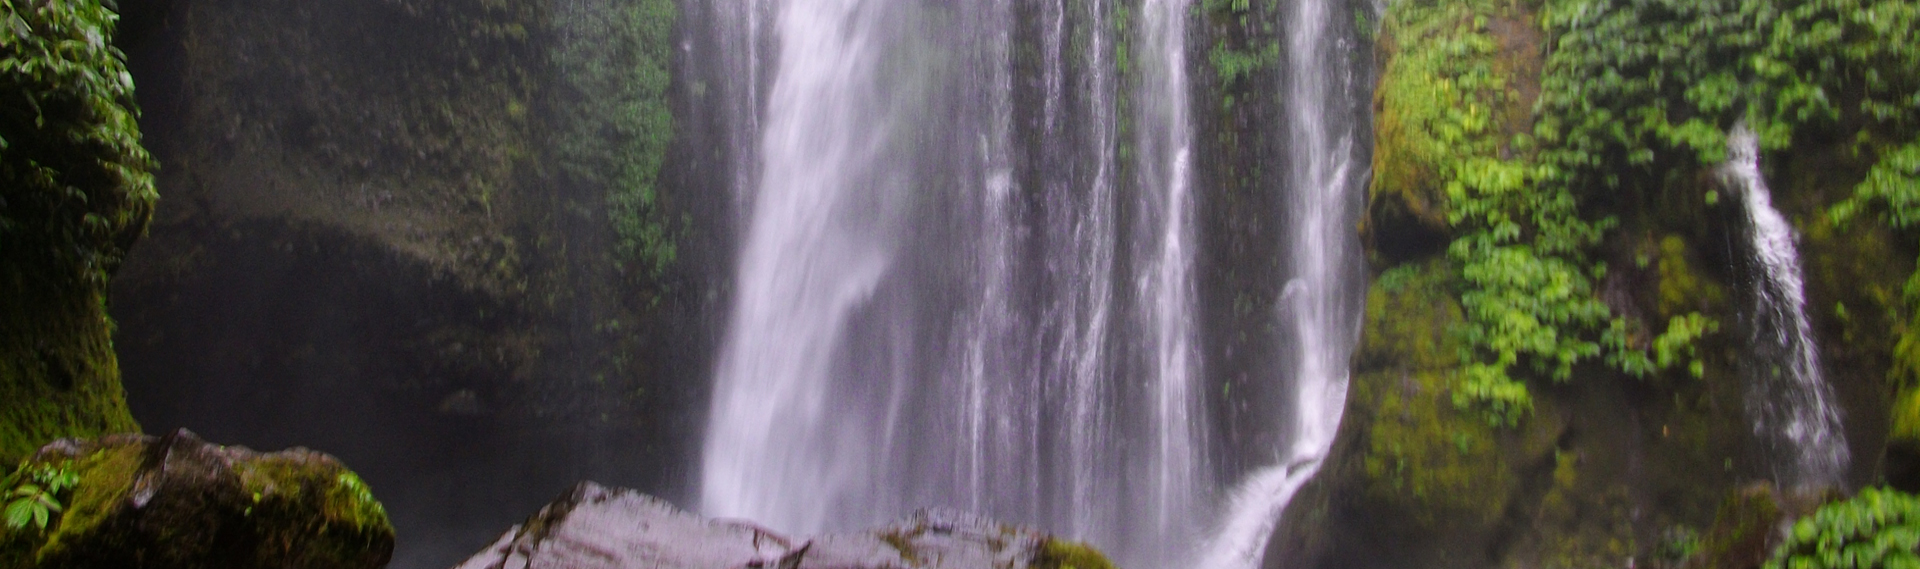 Waterfall in Lombok